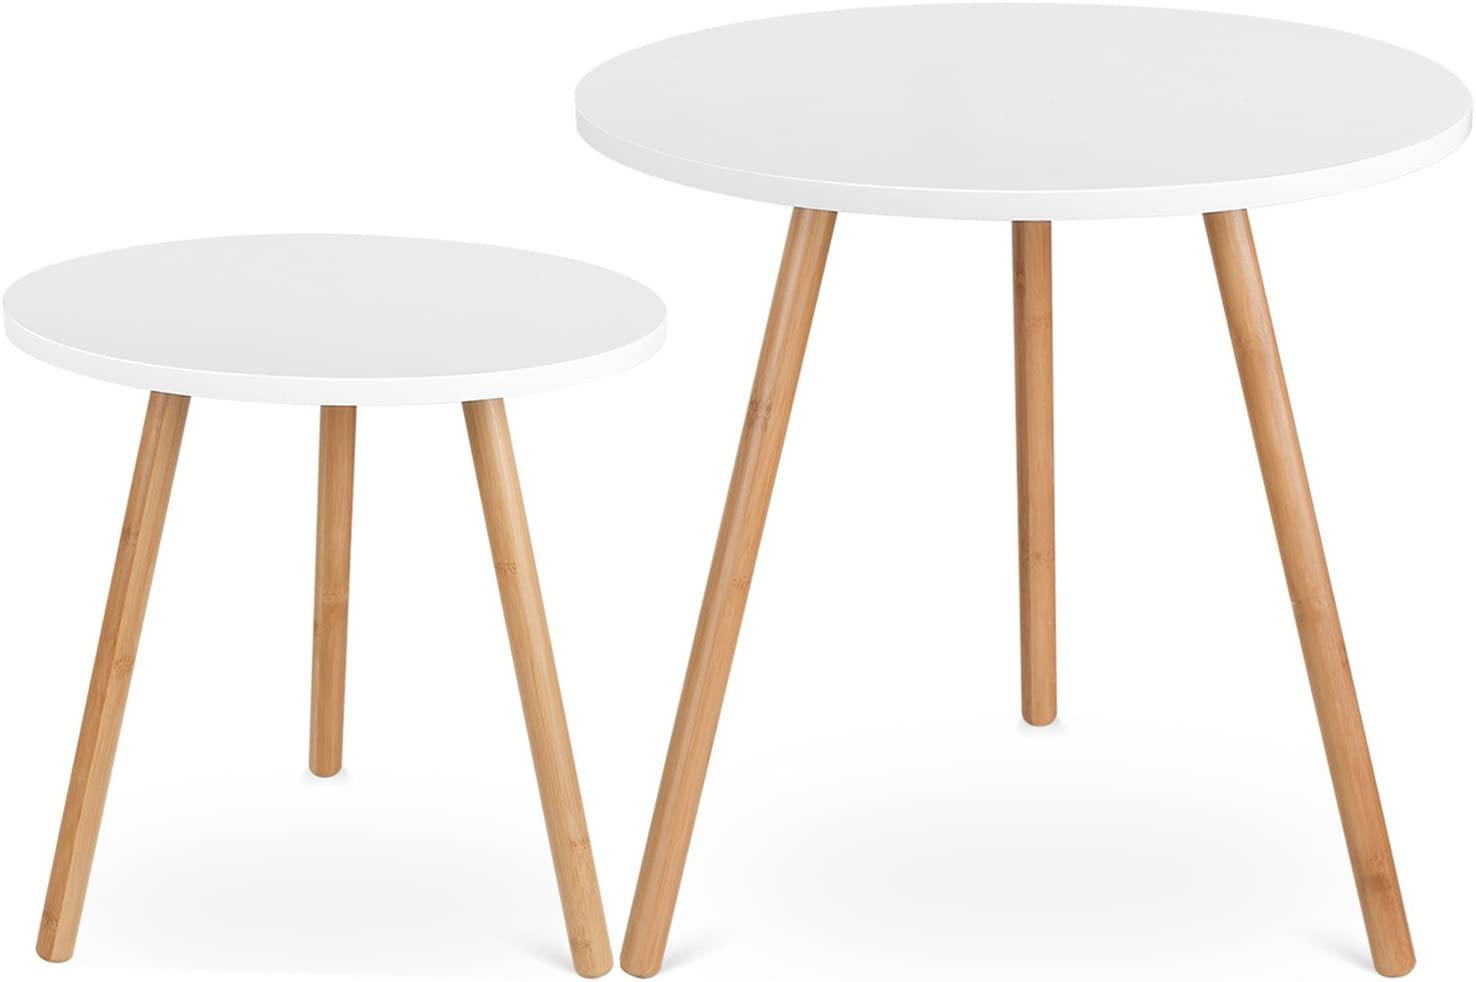 - Homfa Coffee Tables Bedside Table Set Of 2 Round Side Tables For